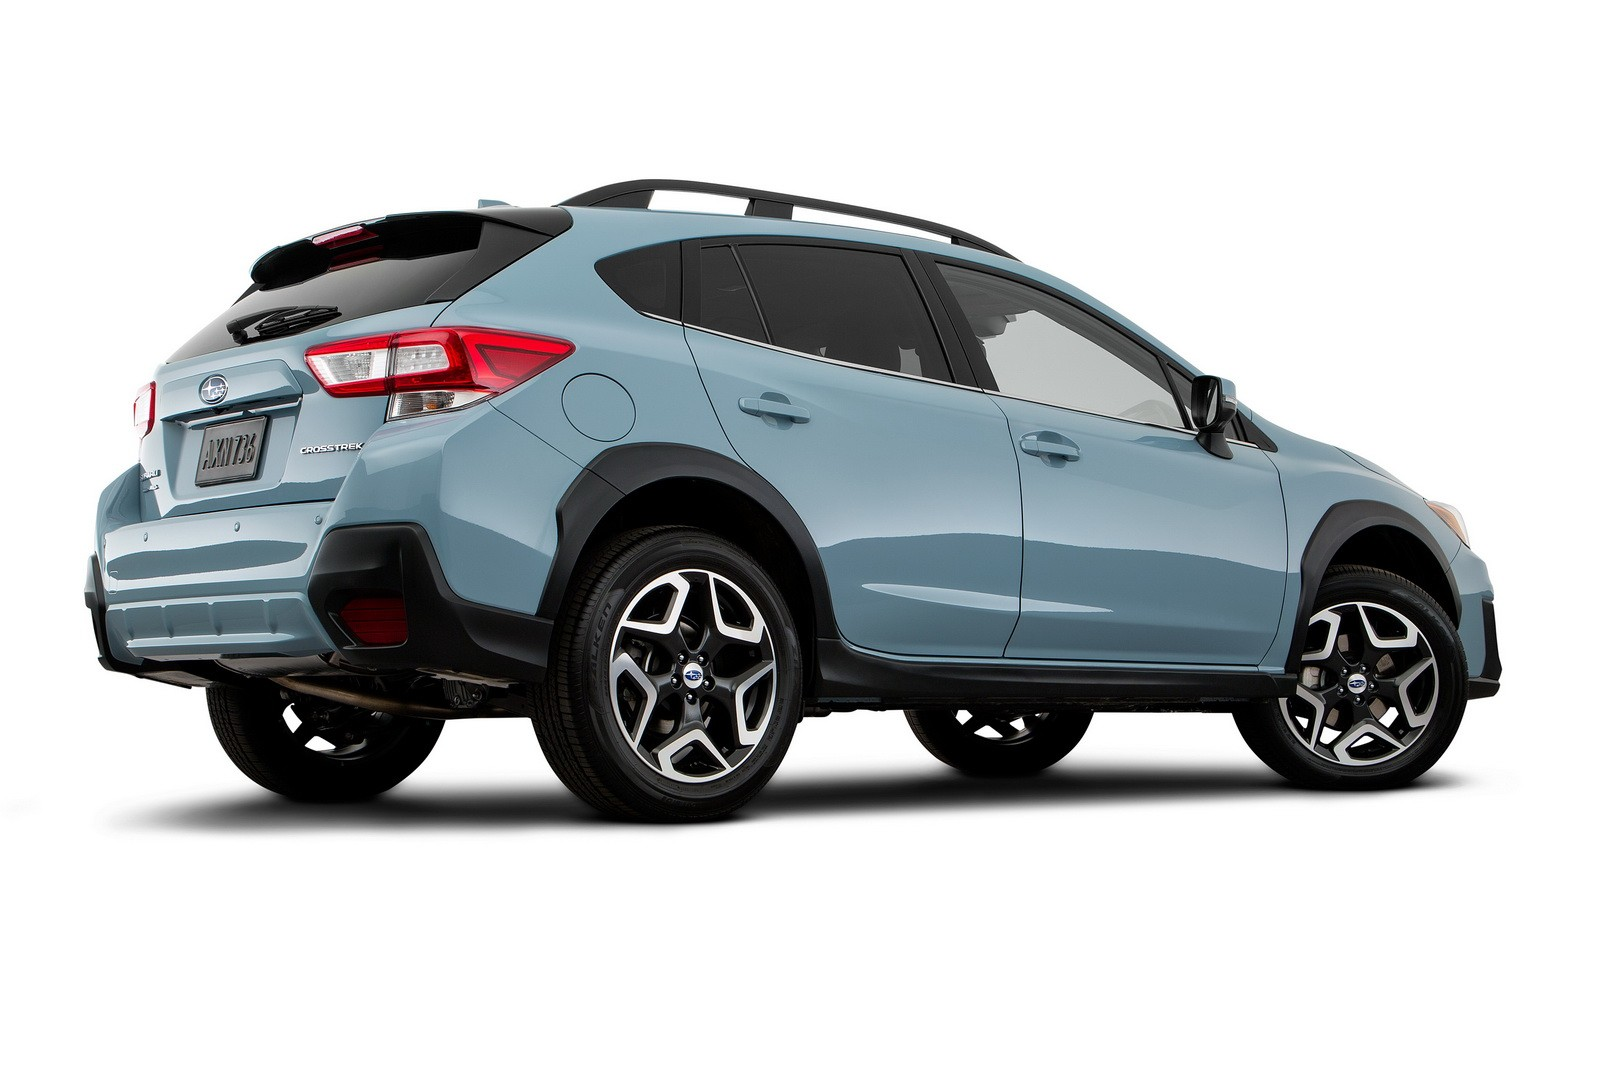 2019 subaru evoltis could be the name of the upcoming boxer-engined phev